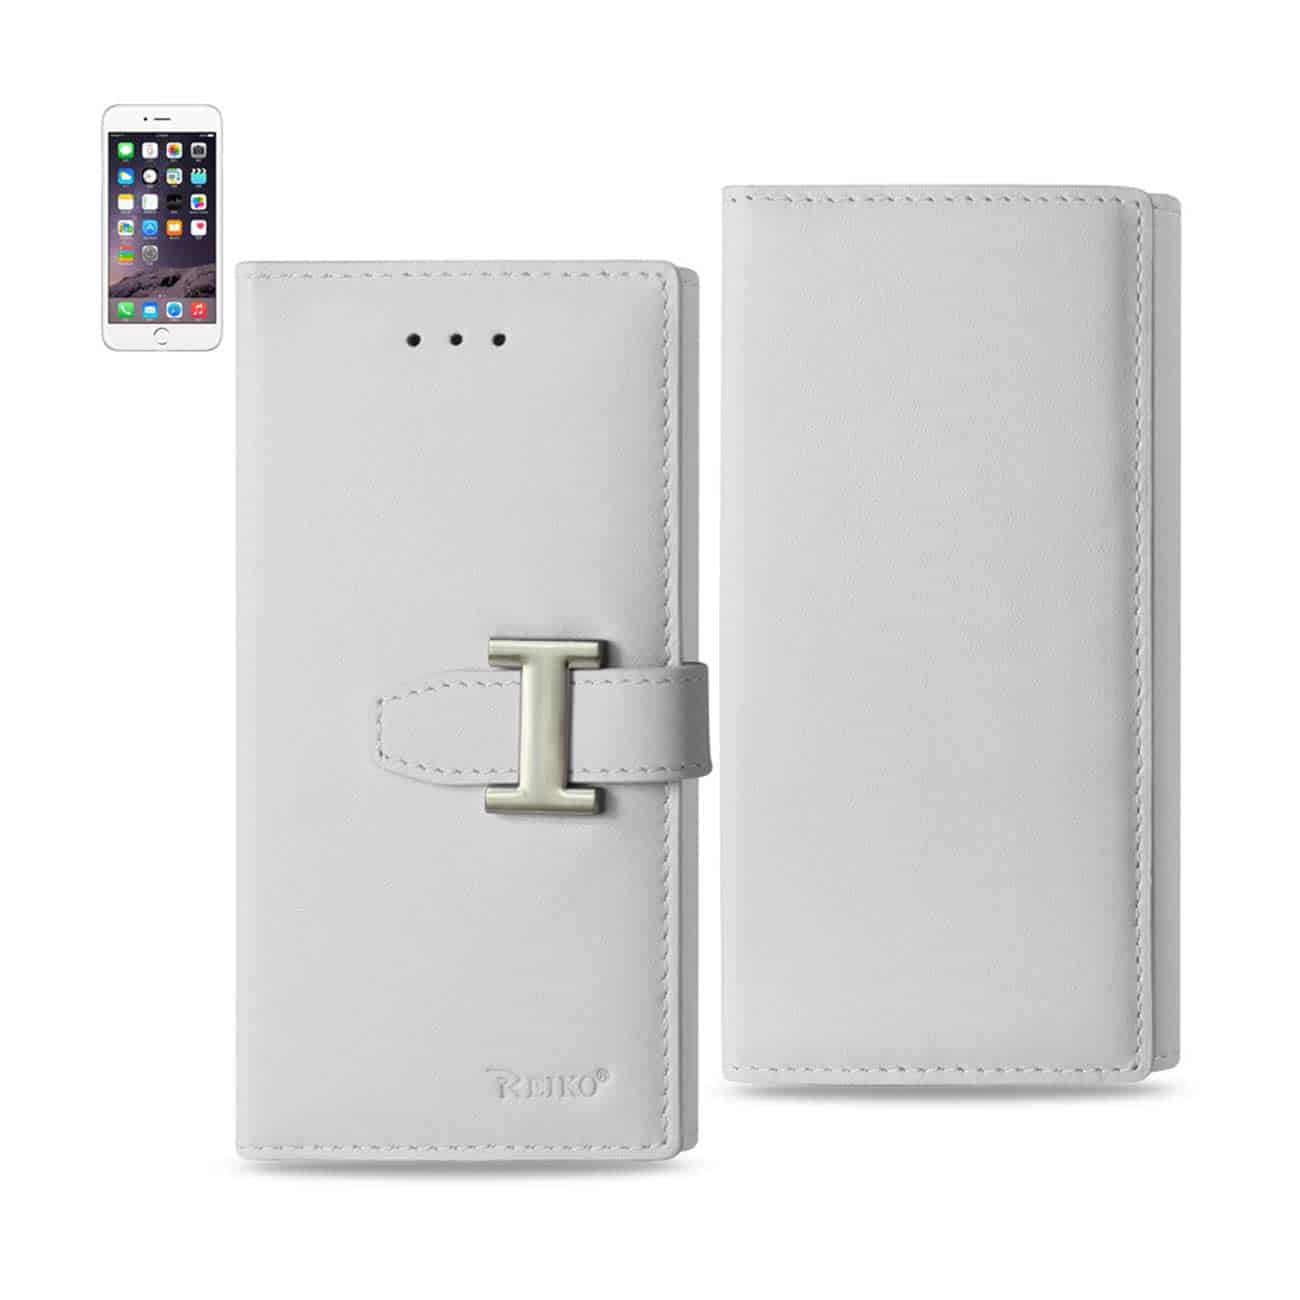 IPHONE 6 GENUINE LEATHER RFID WALLET CASE IN IVORY